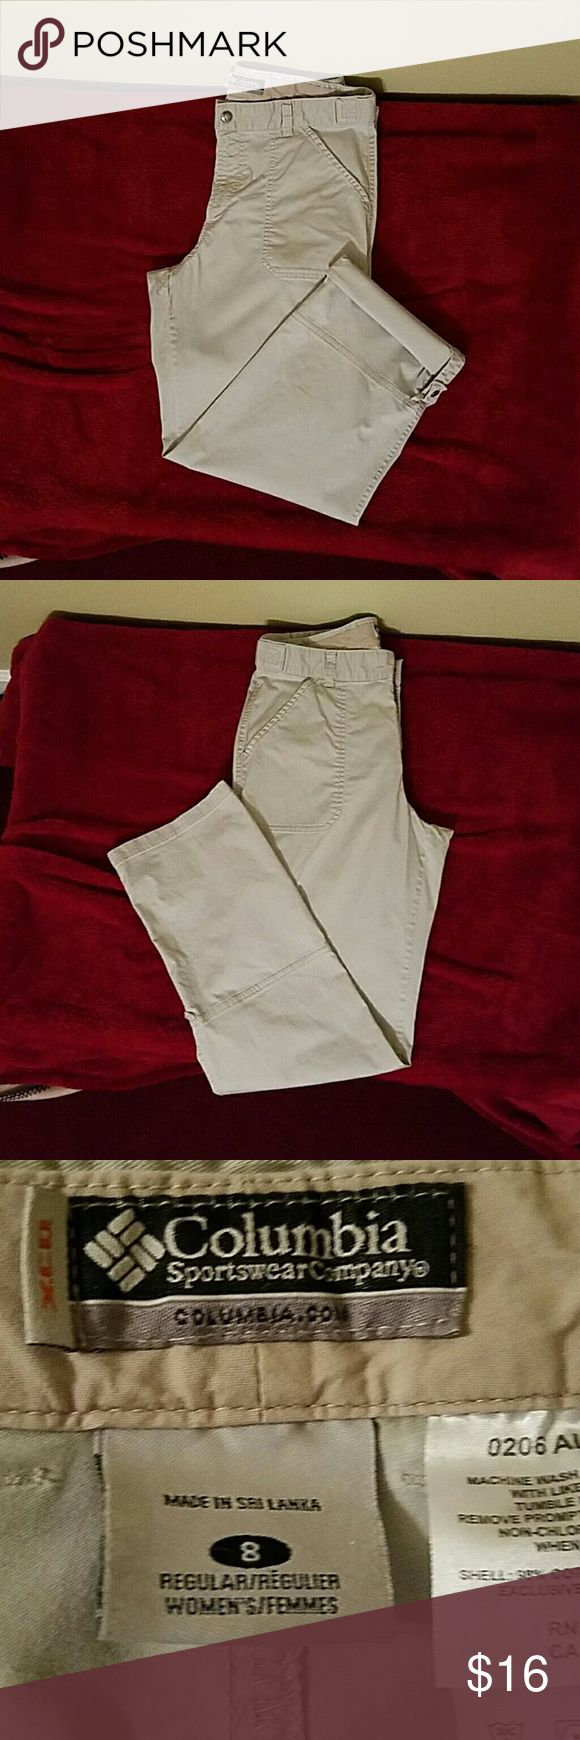 Columbia Sportswear tan pants Columbia Sportswear tan pants in good condition.  Length is 40 from waist to hem.  When rolled up 34 inches from waist to end of rolled up hem. Inseam is 30 inches when not rolled up and 25 inches when rolled up. Columbia Pants